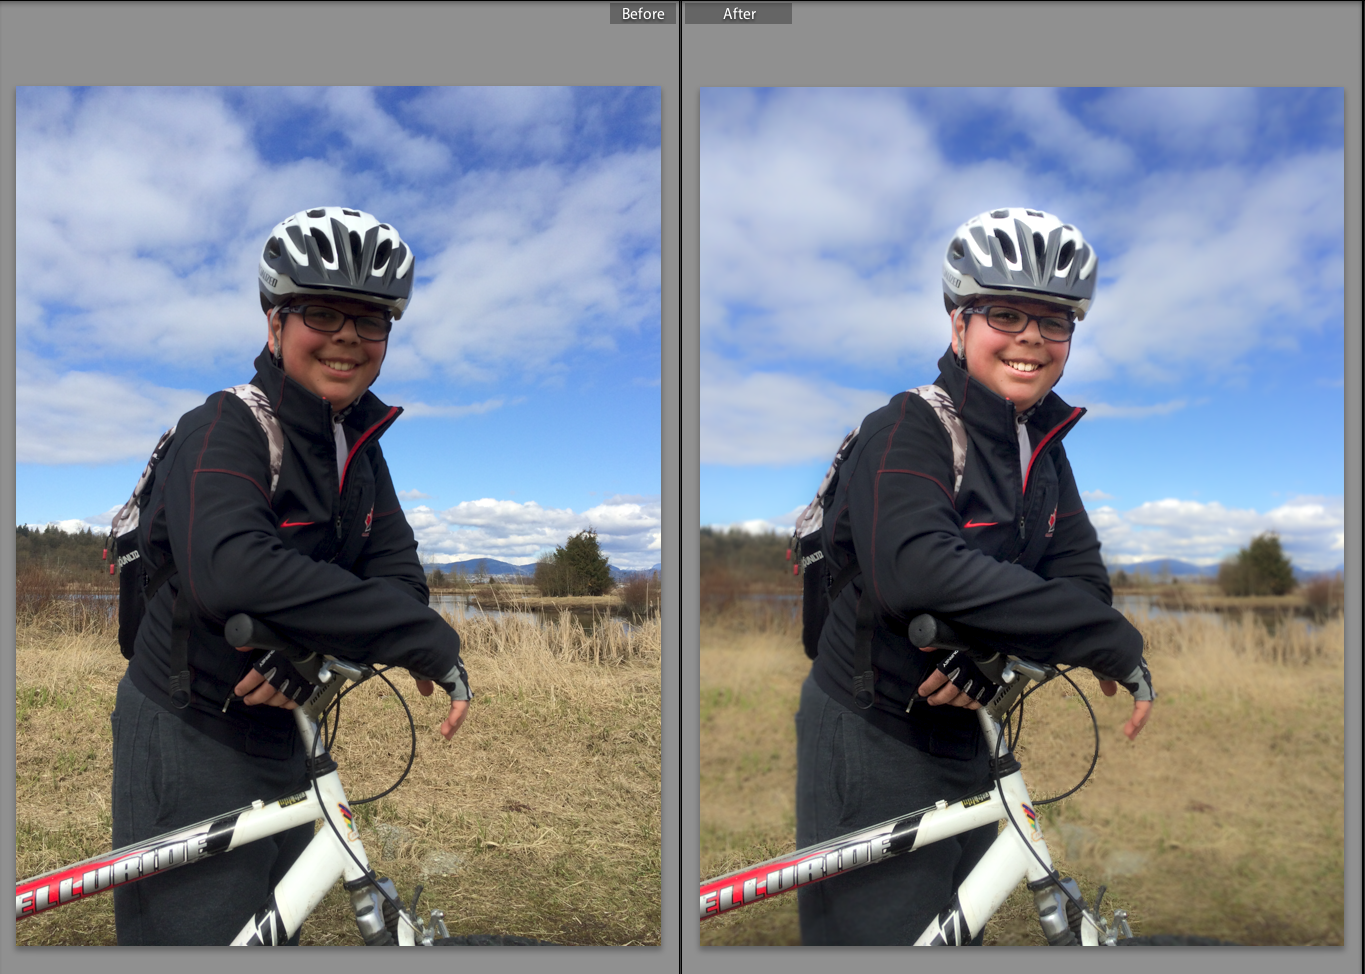 Using Lightroom Radial Filter Before and After